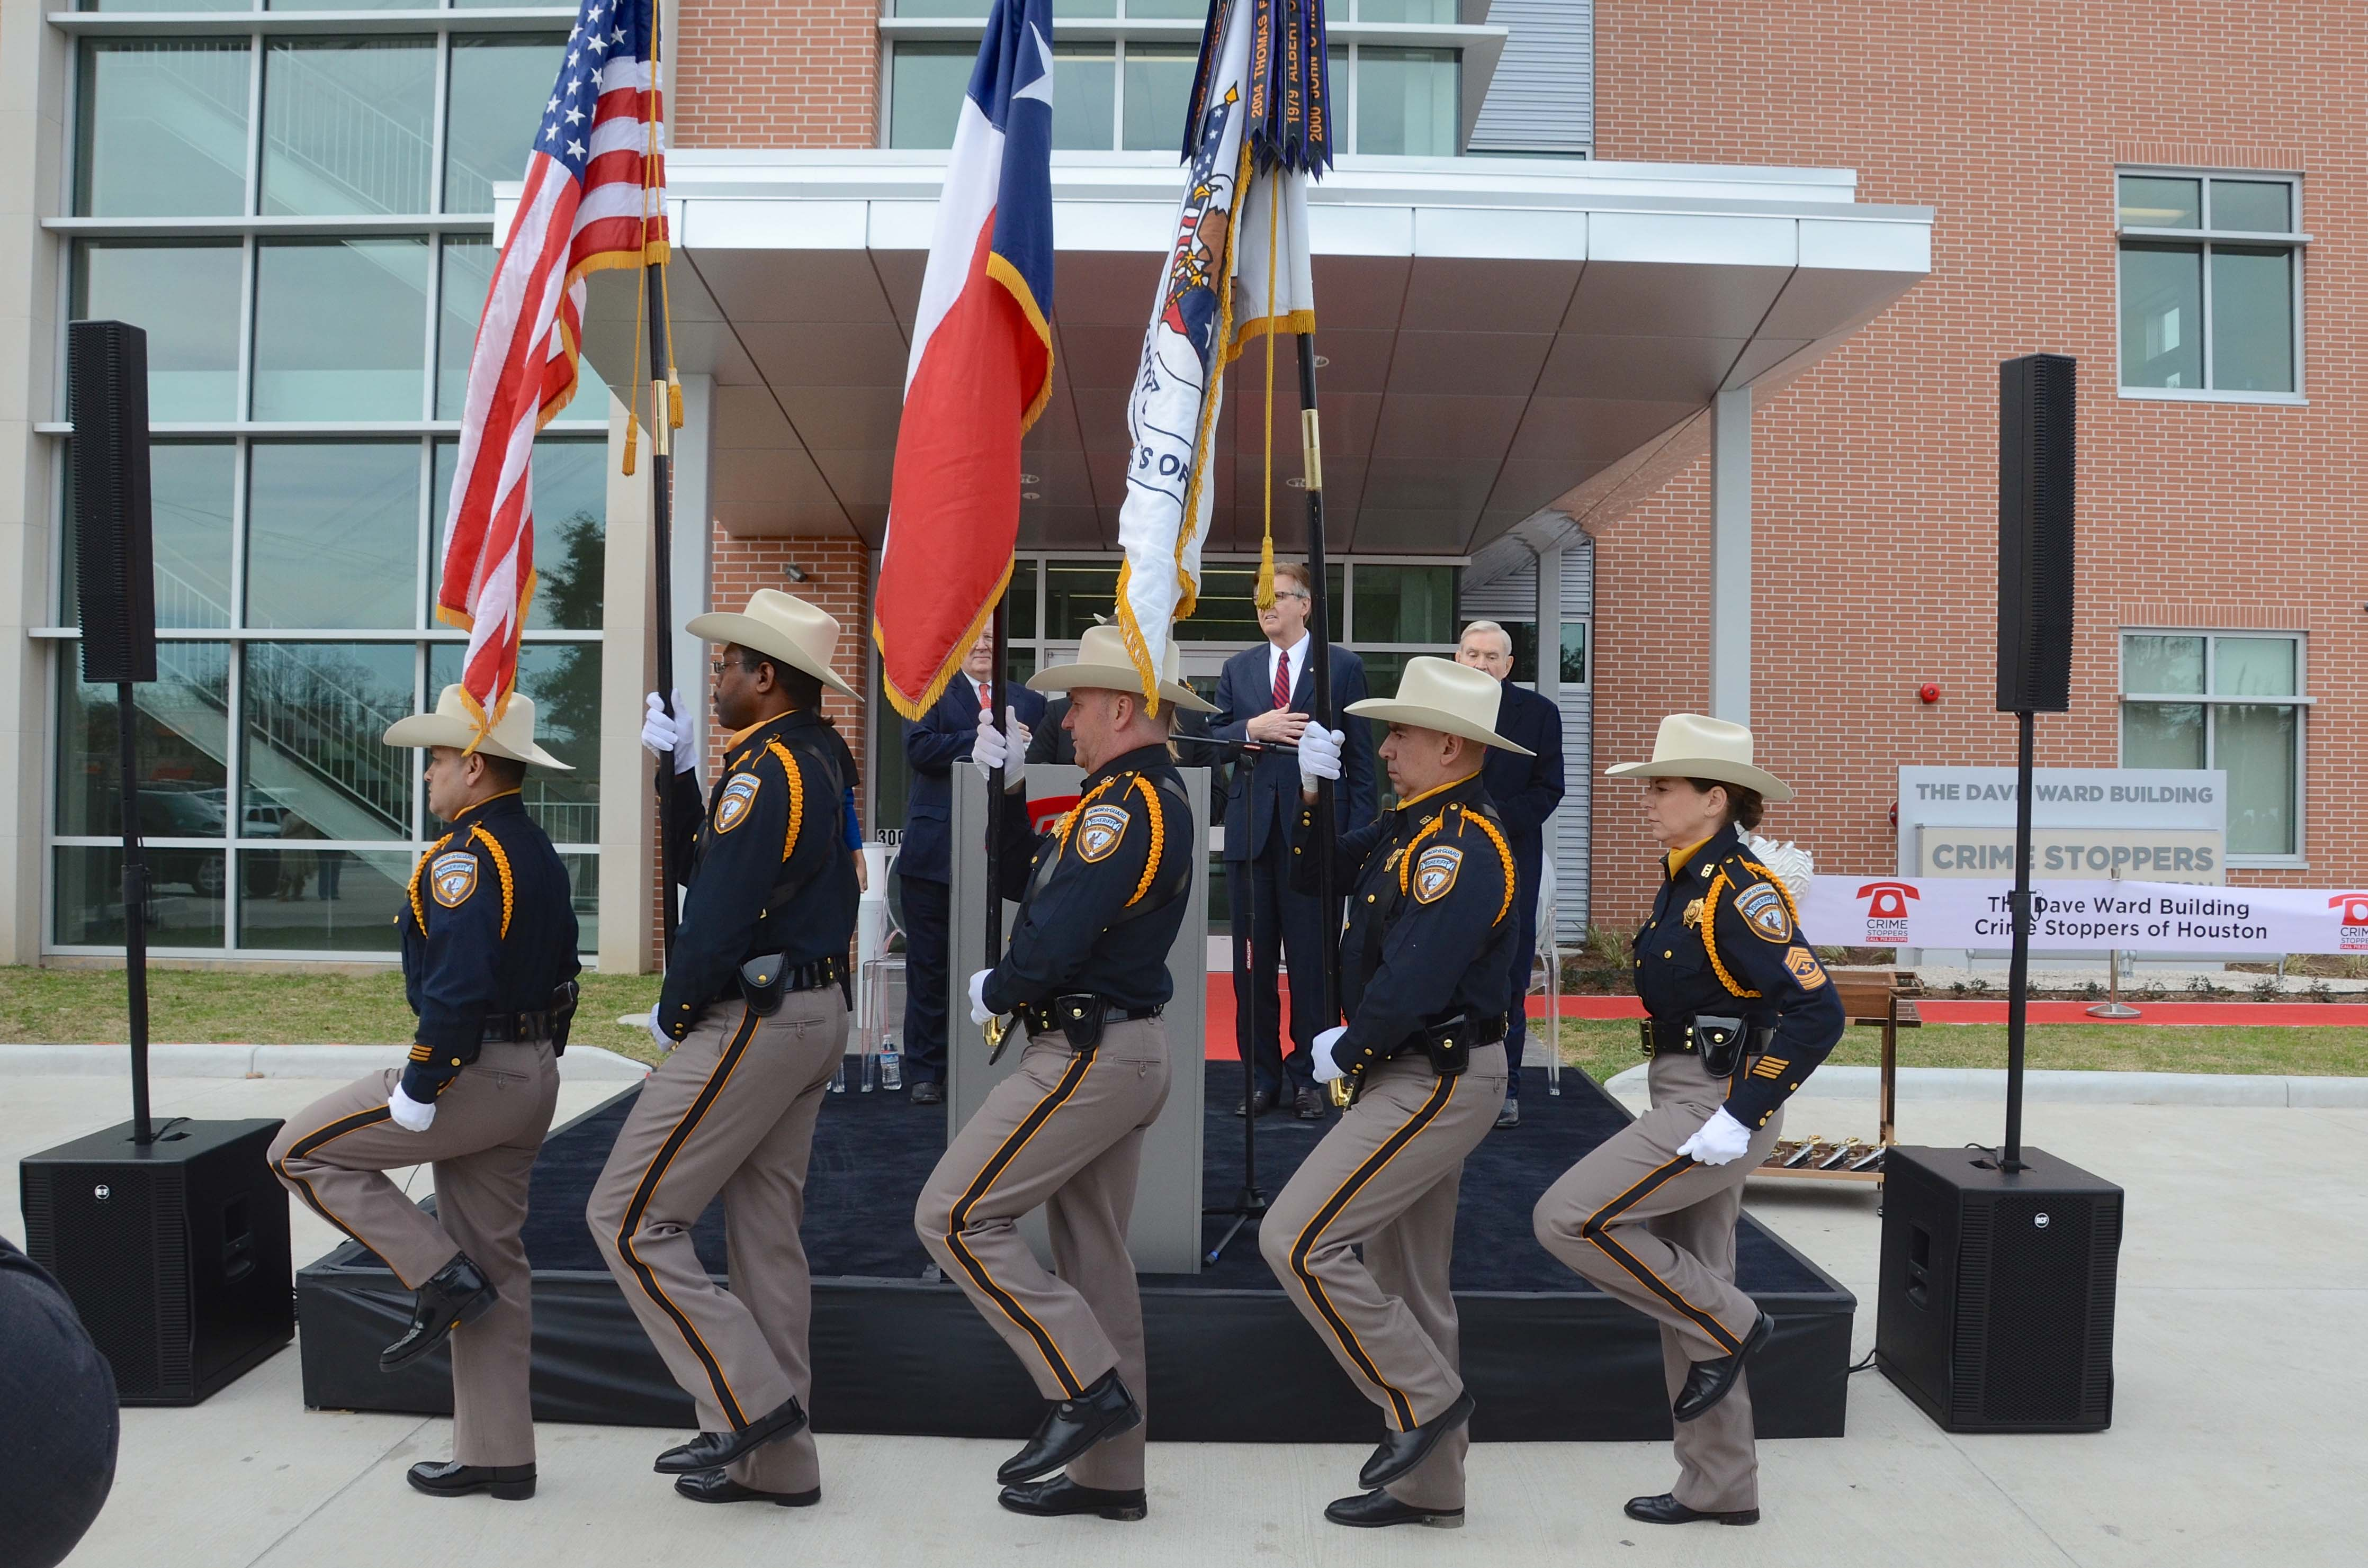 Presentation of colors by the Harris County Sheriff's Office Honor Guard